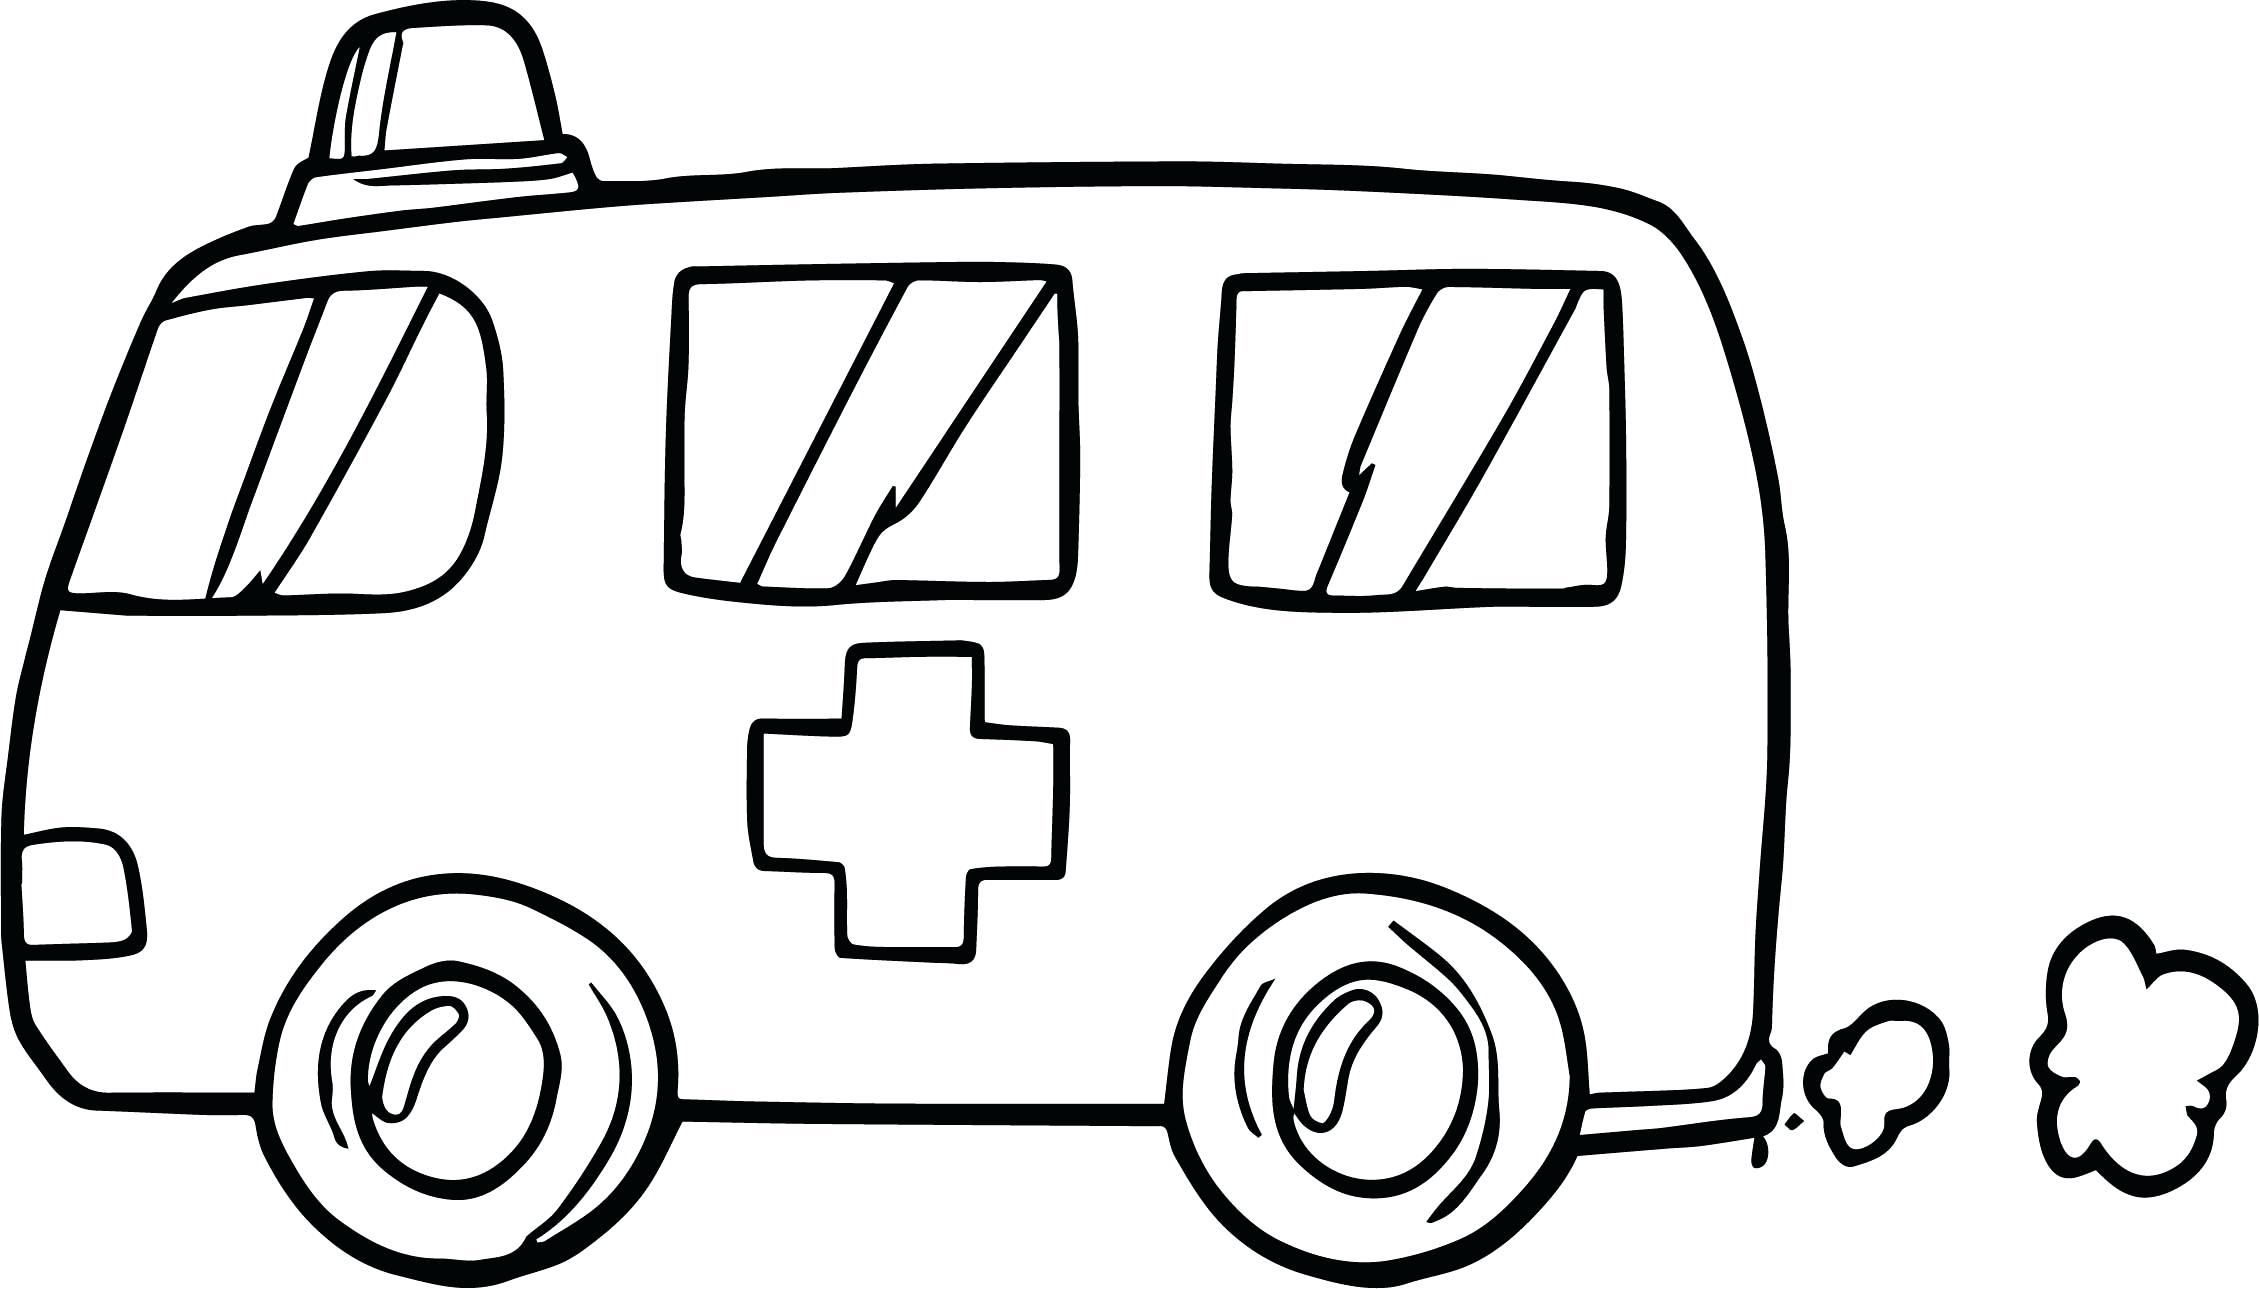 2259x1289 Ambulance Coloring Pages Printable. Cute Emergency Ambulance Car